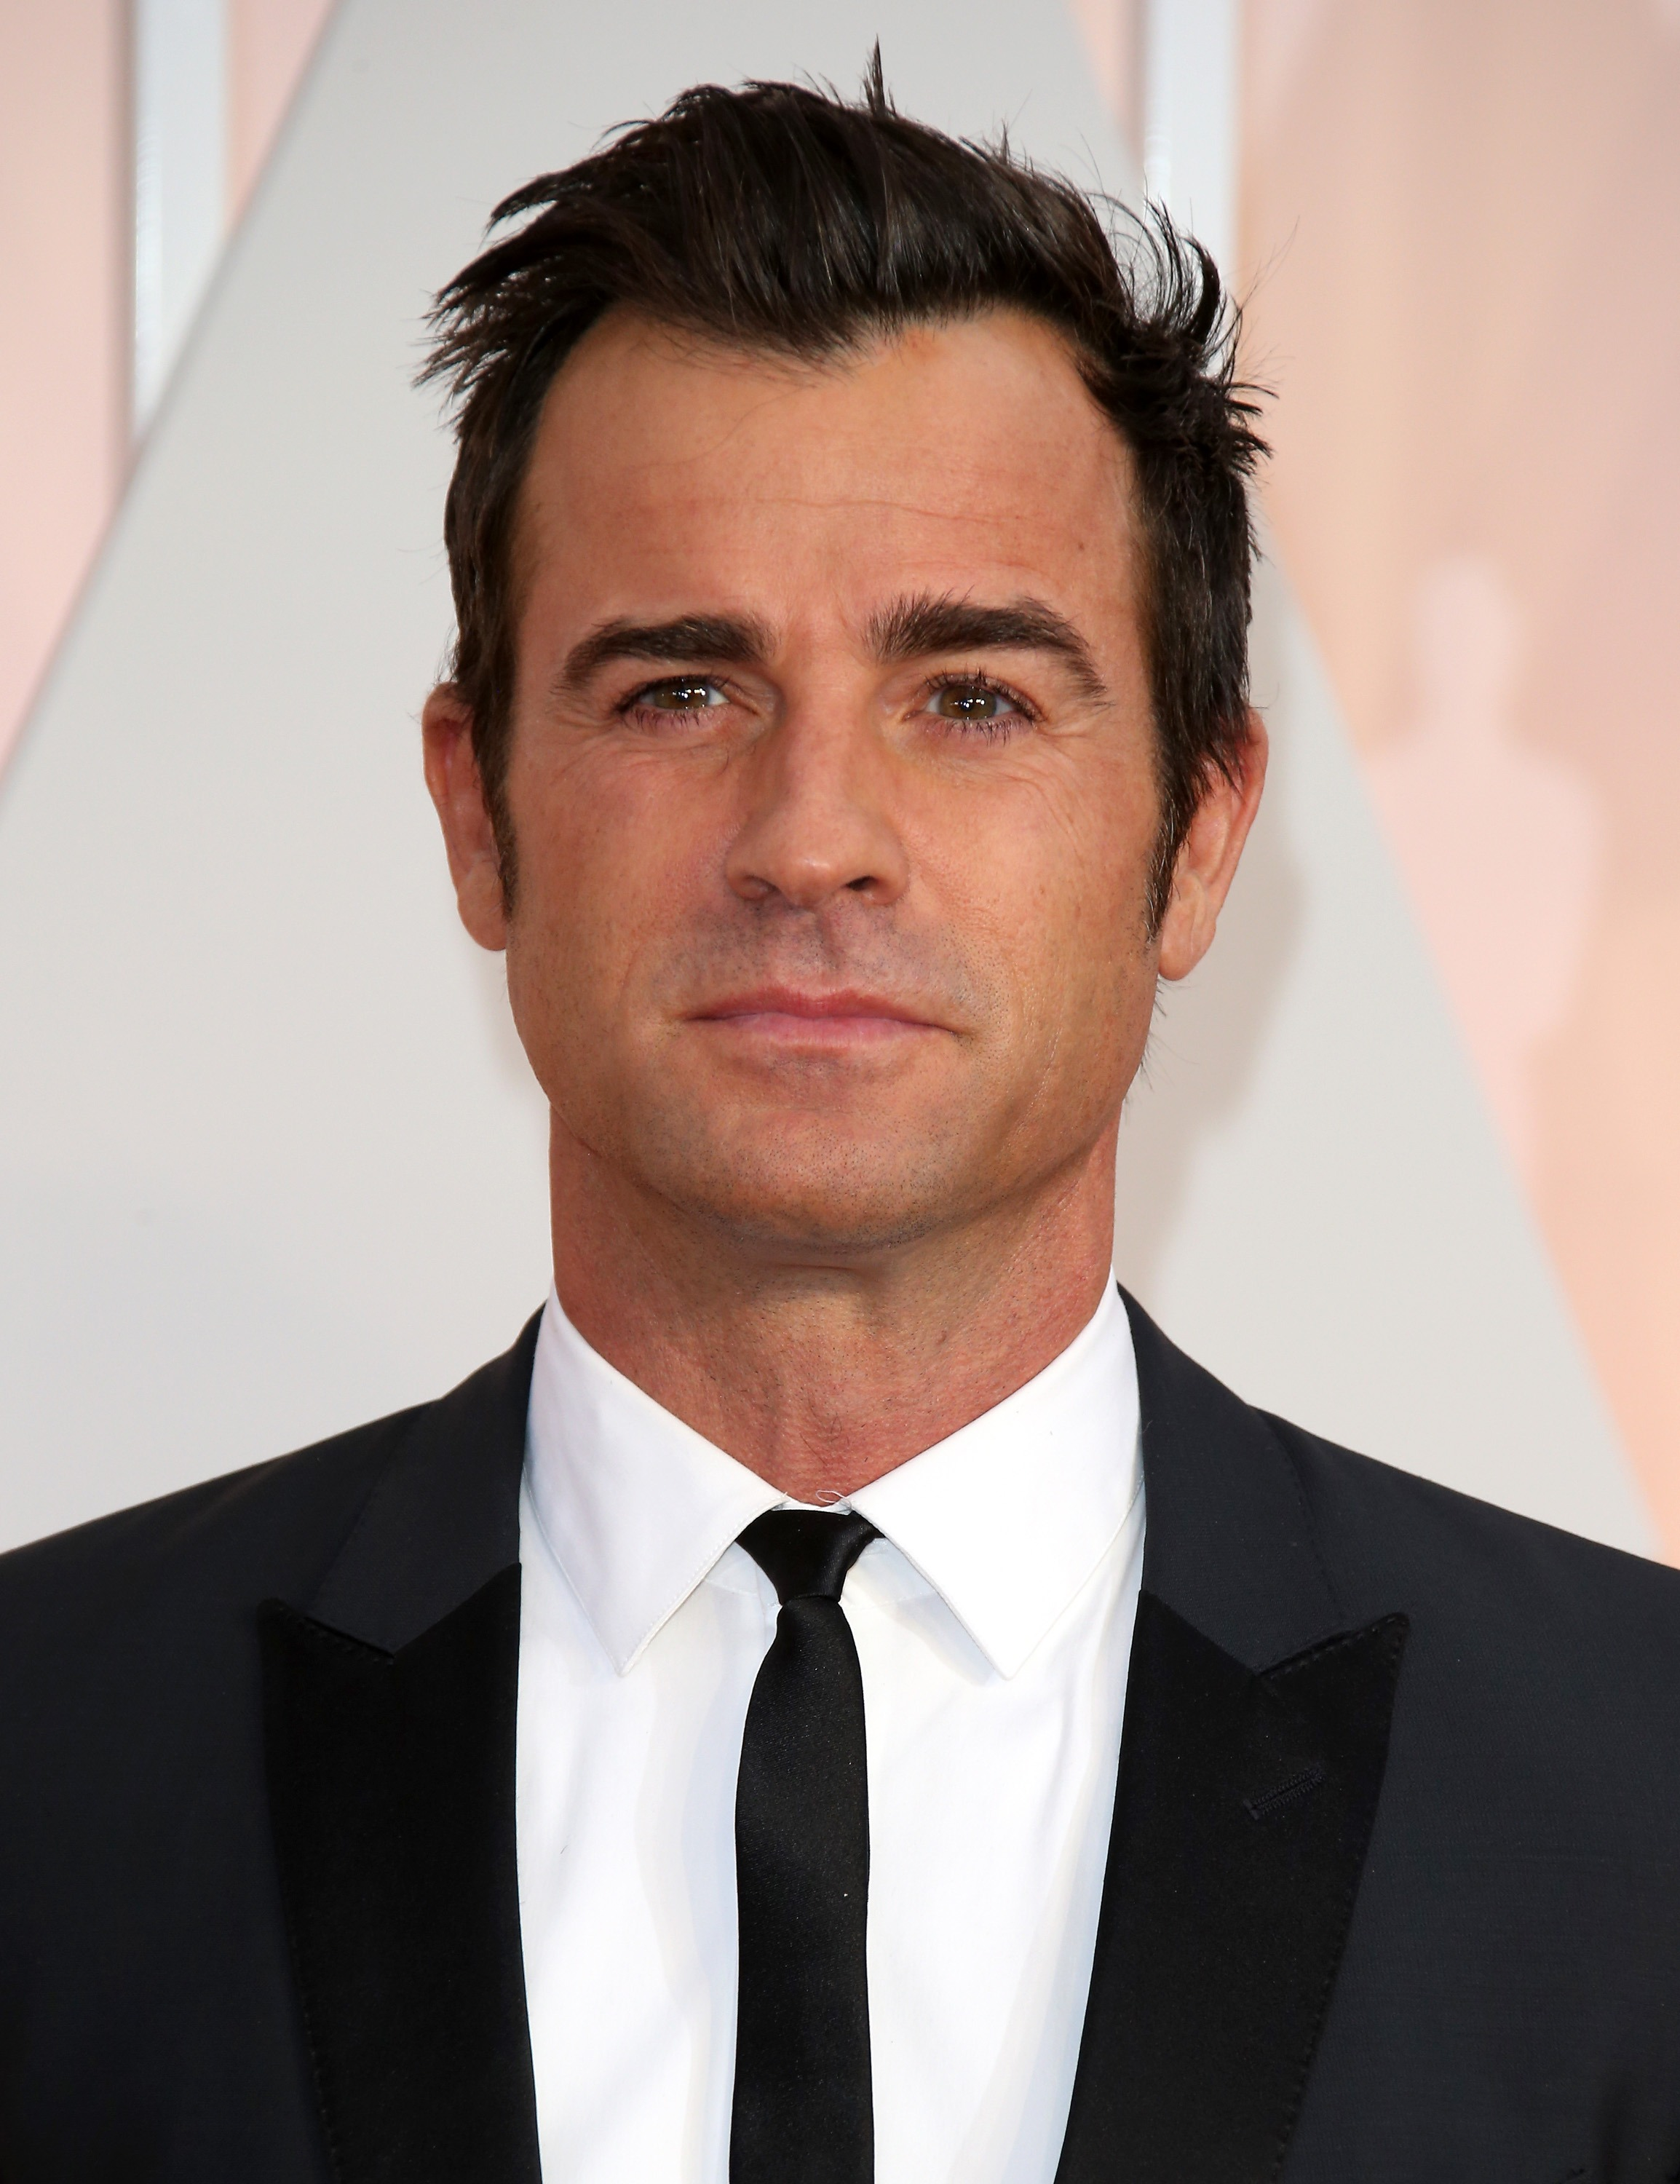 Life of Justin Theroux: Why Did He and Jennifer Aniston Split